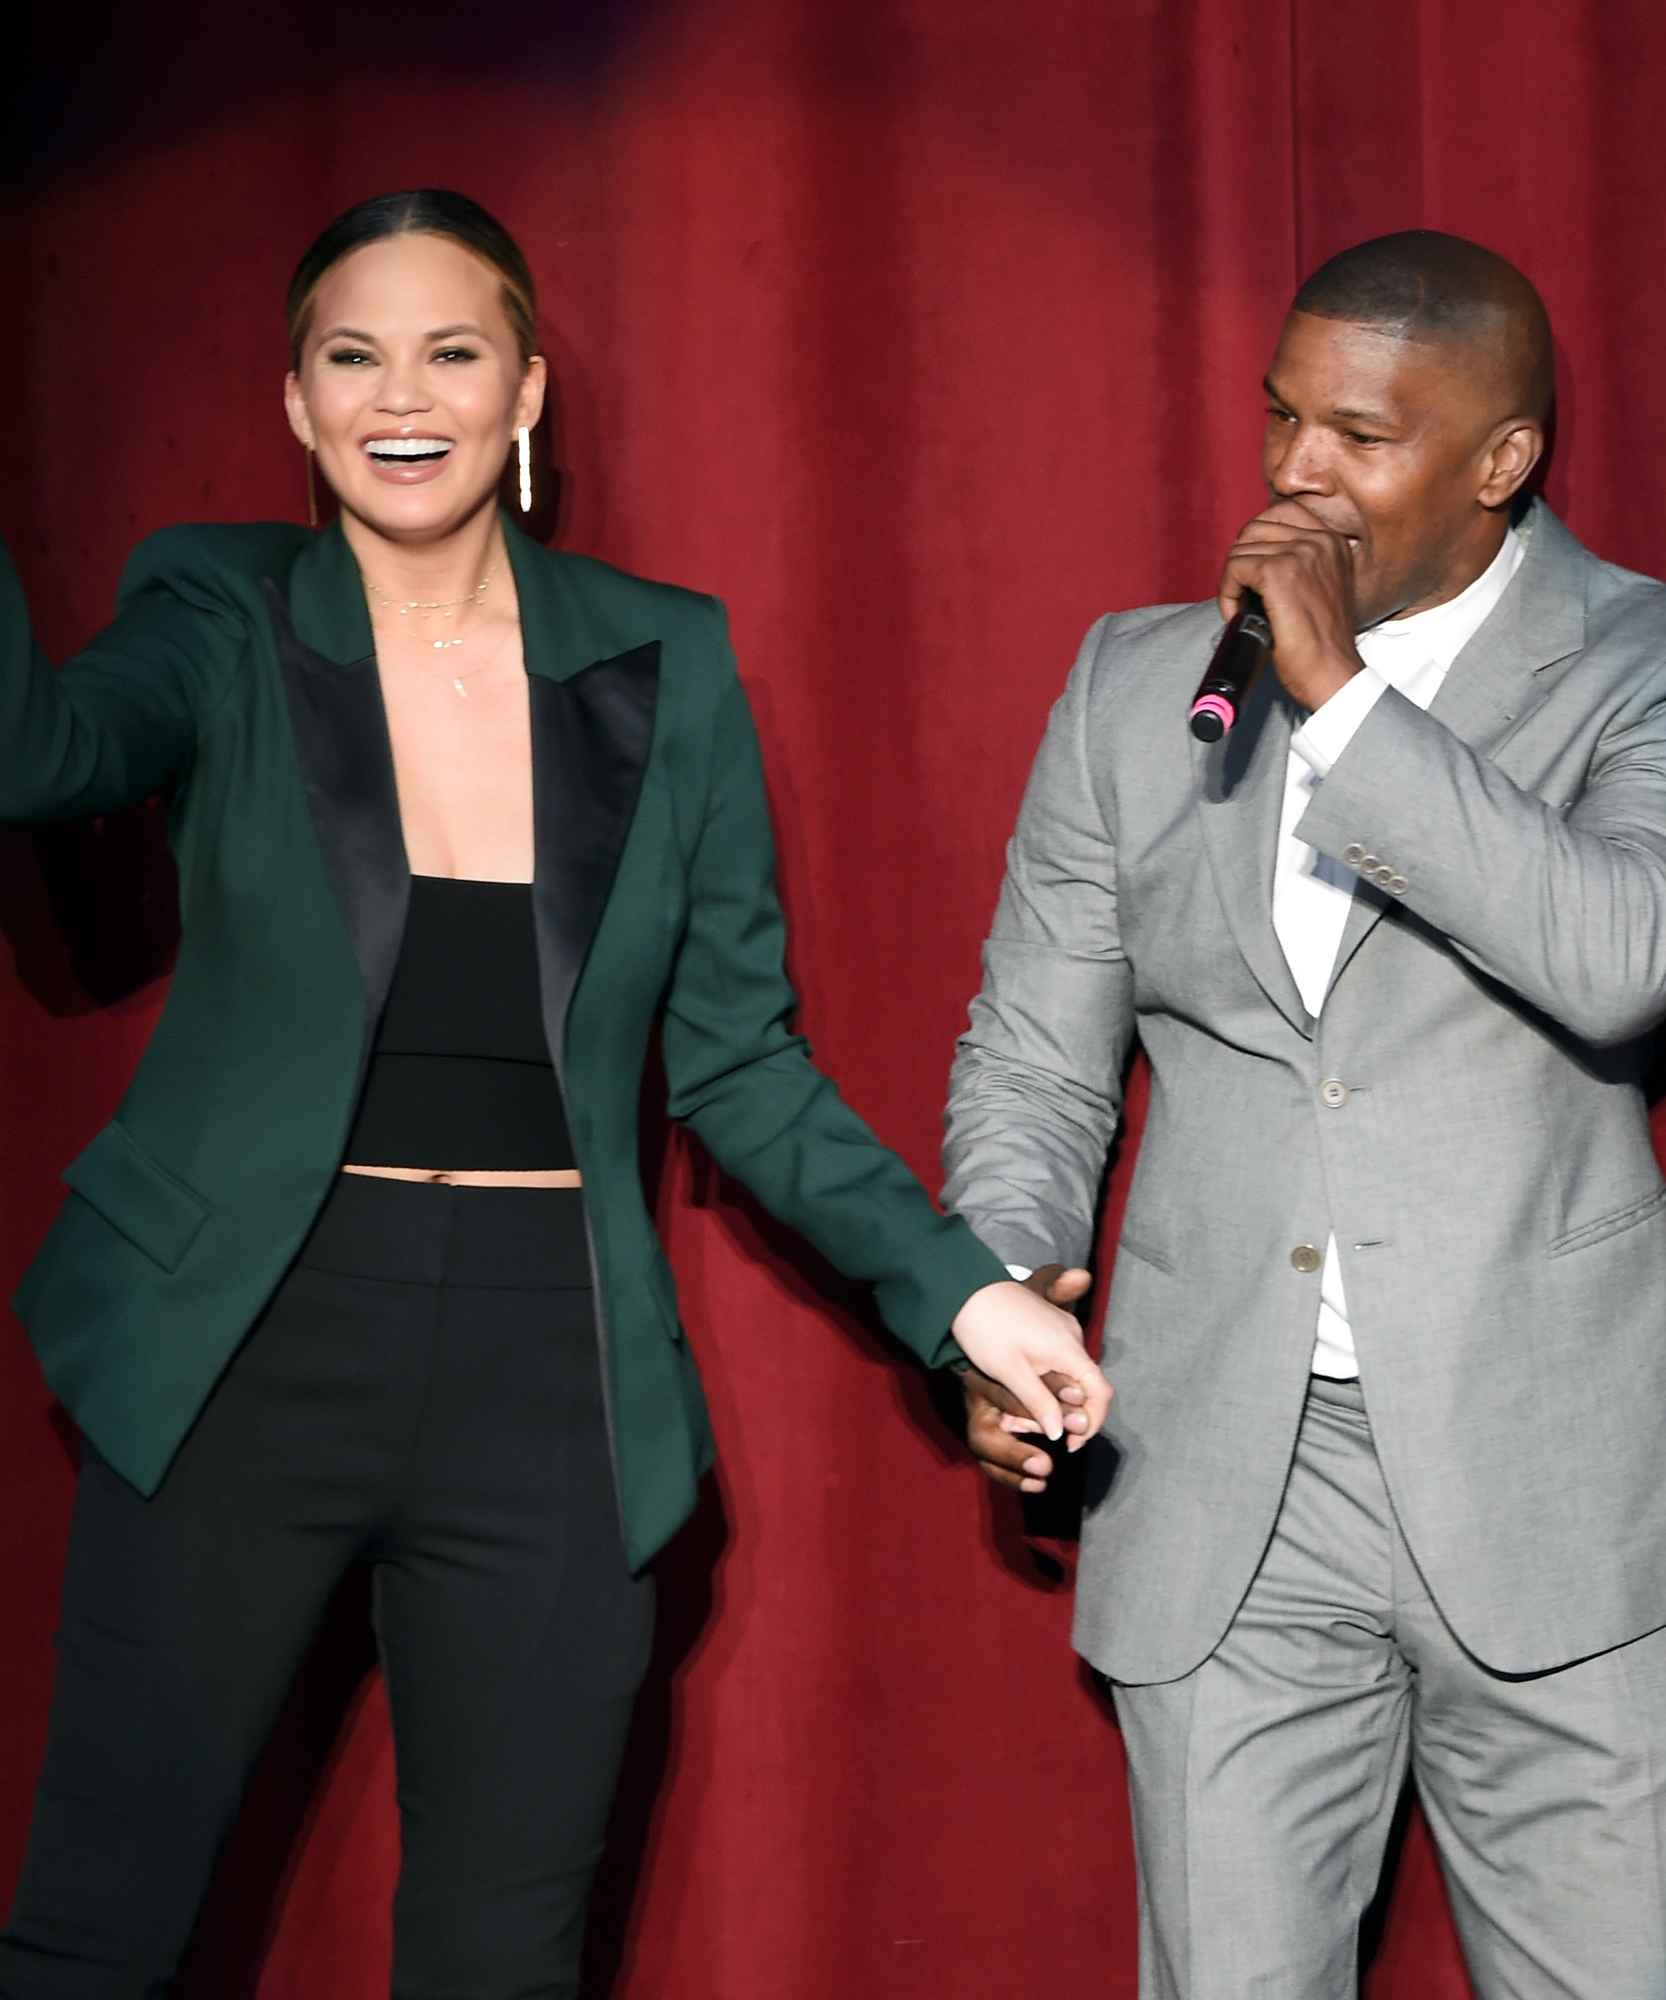 Actress Chrissy Teigen (L) and Jamie Foxx speak onstage during the 'Hillary Clinton: She's With Us' concert at The Greek Theatre on June 6, 2016 in Los Angeles, California.